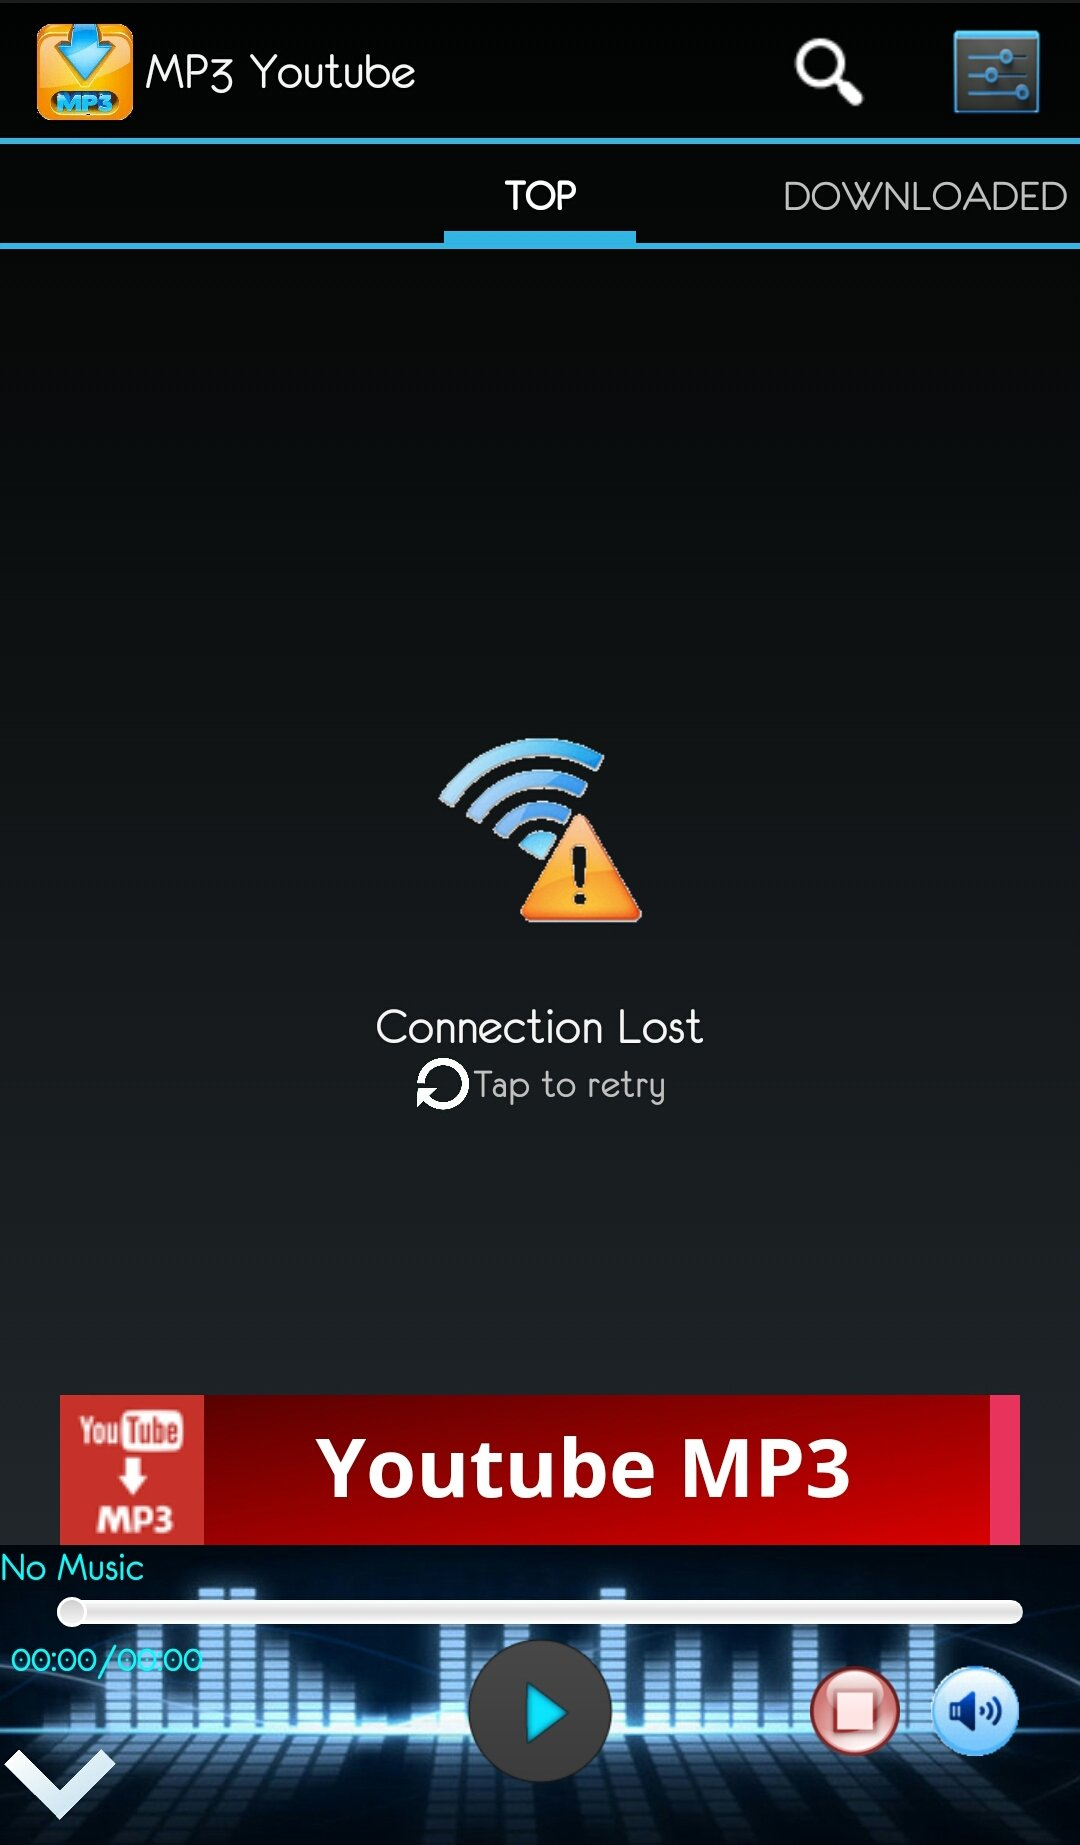 youtube mp3 song download apk